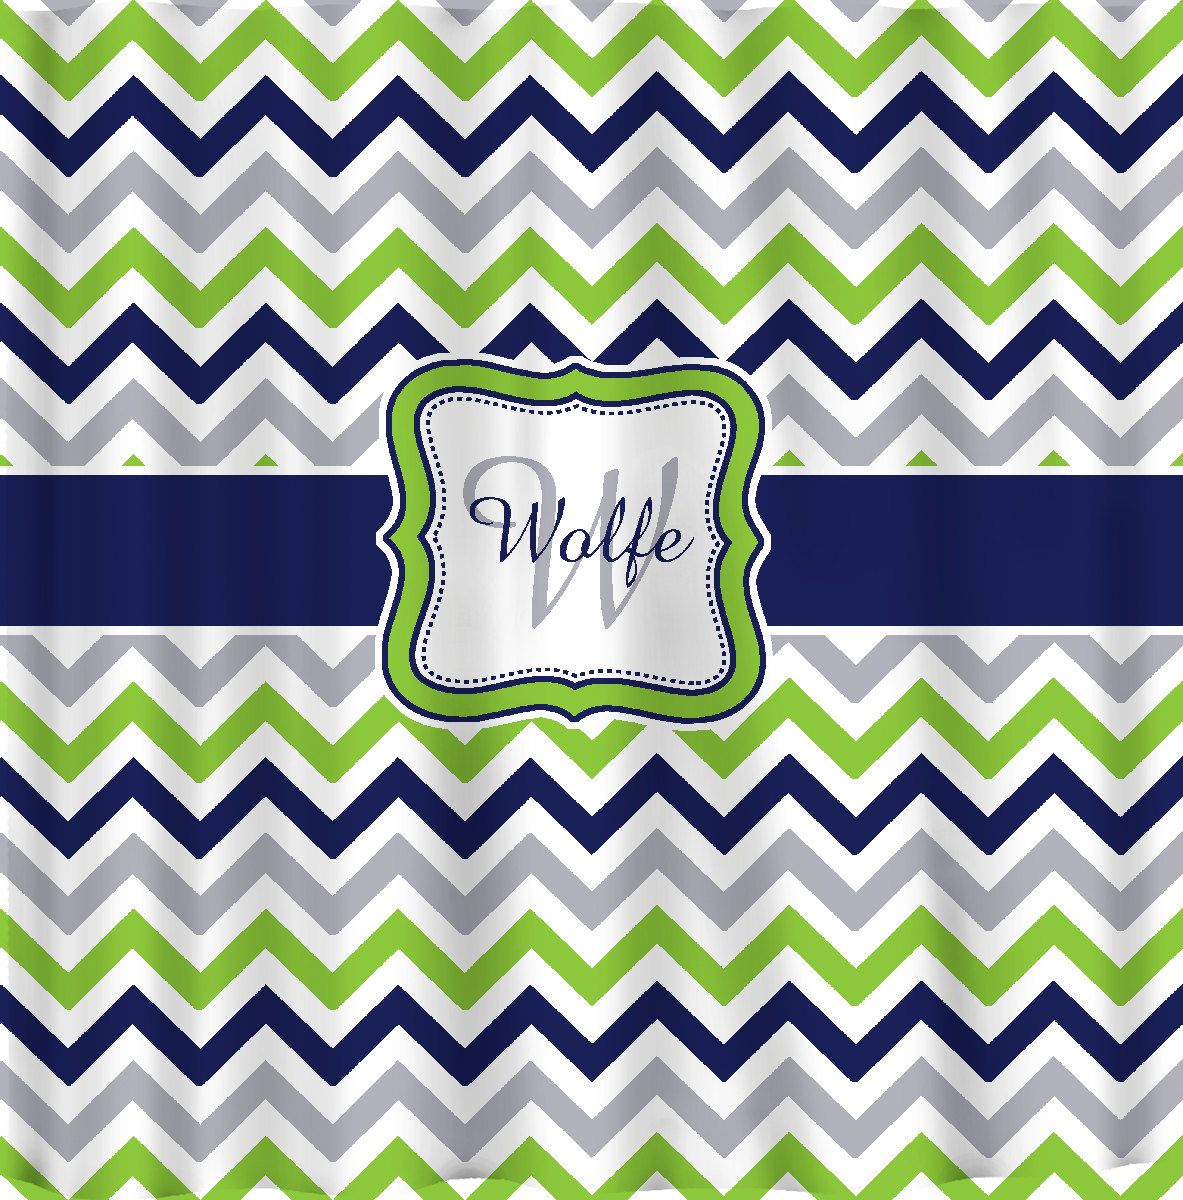 Shower Curtain Multi Color Lime Navy Gray And White By Redbeauty, $78.00